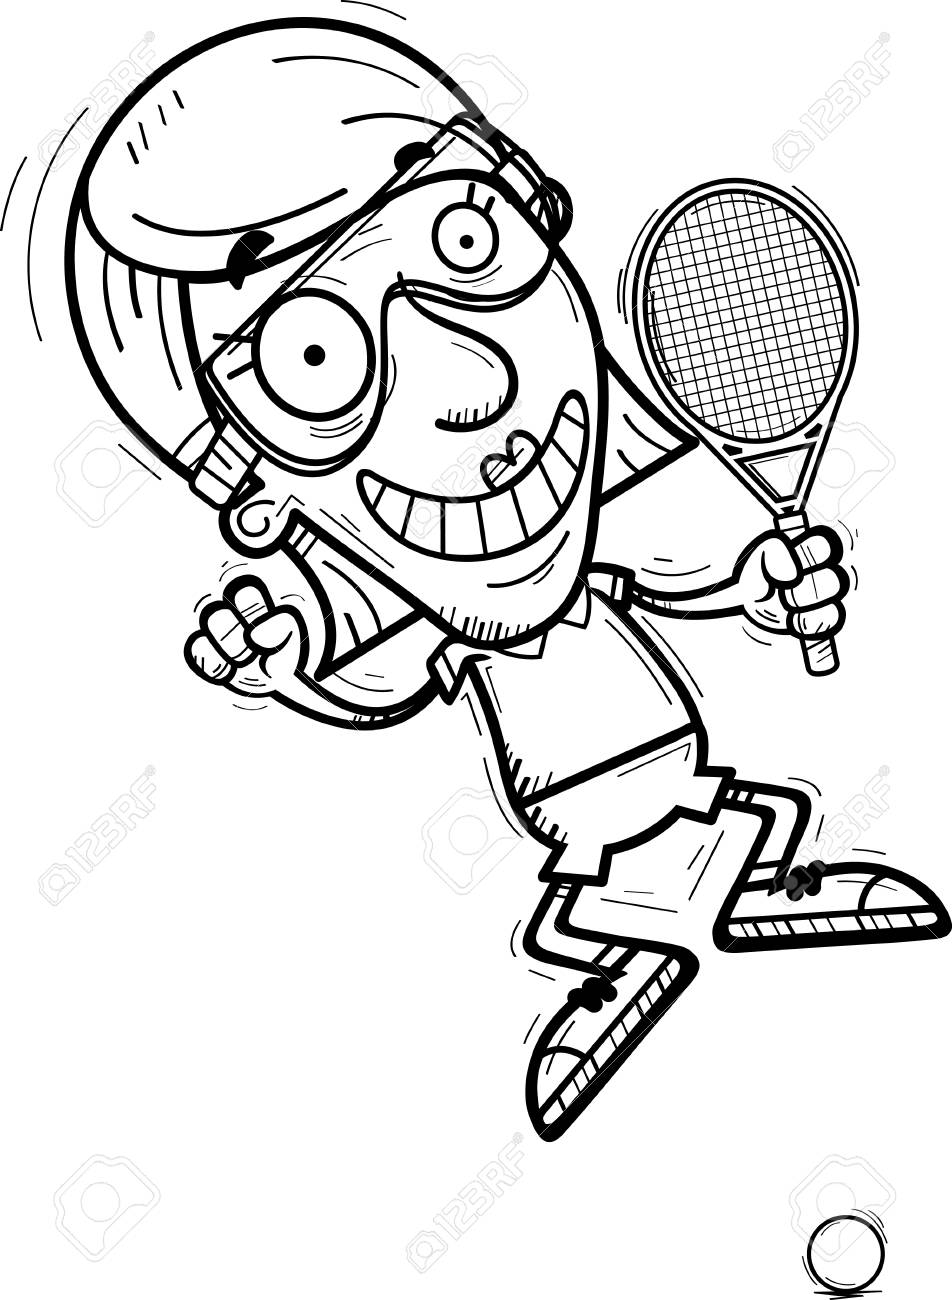 medium resolution of a cartoon illustration of a senior citizen woman racquetball player jumping stock vector 102270756